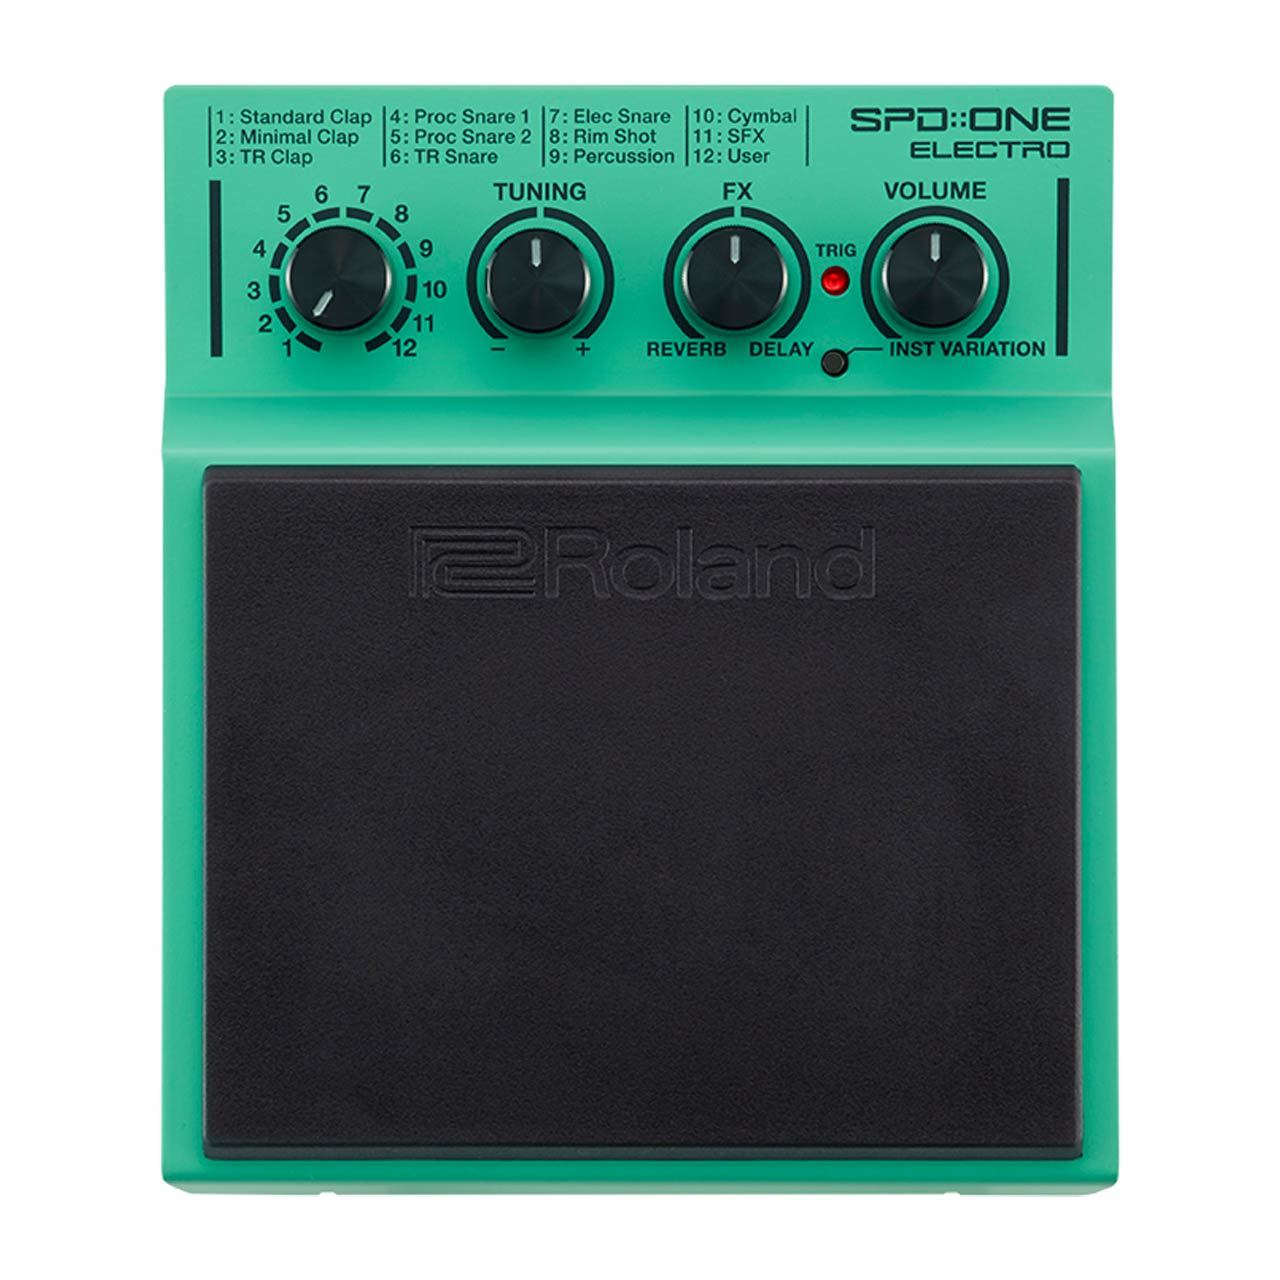 Percussion Controllers - Roland SPD ONE Electro Percussion Pad